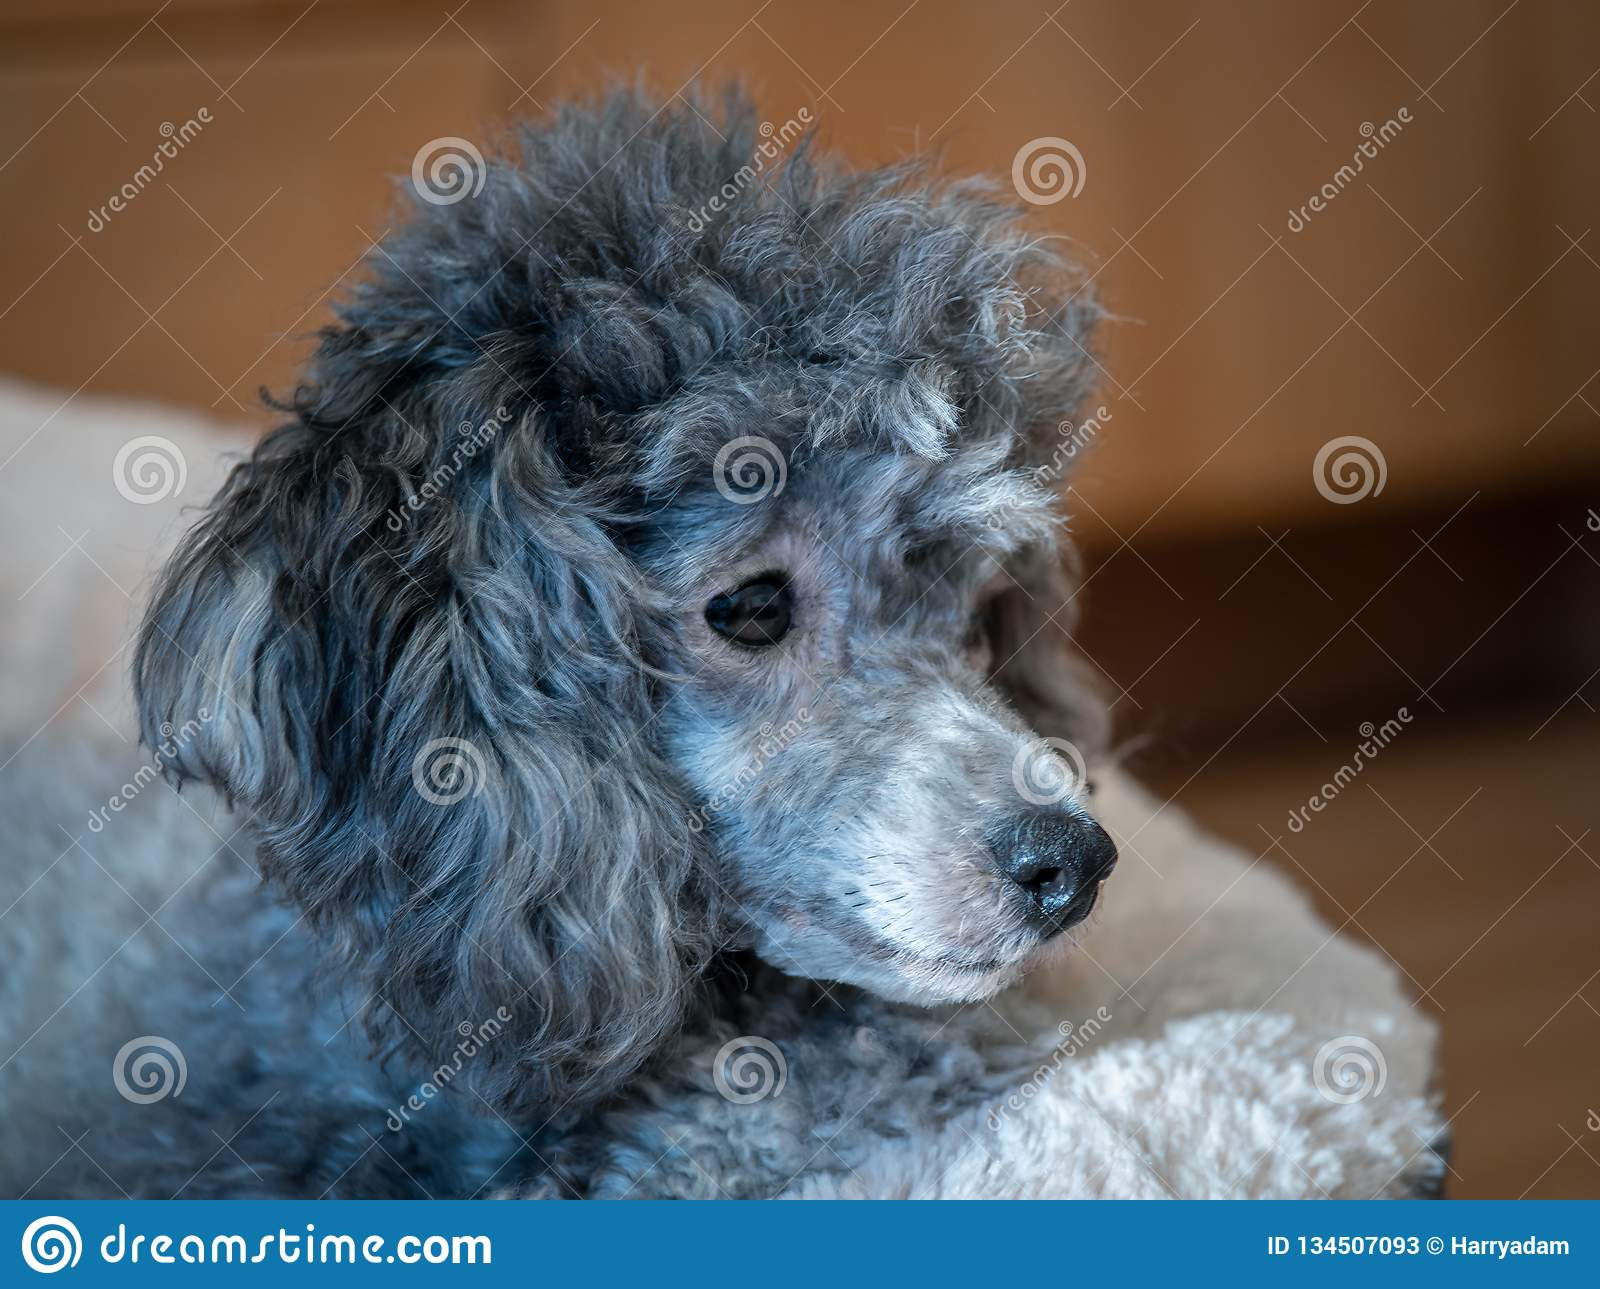 Poodle Silver Poodle Lies On Its Sleeping Place Side View Stock Image Image Of Sleeping Silver 134507093